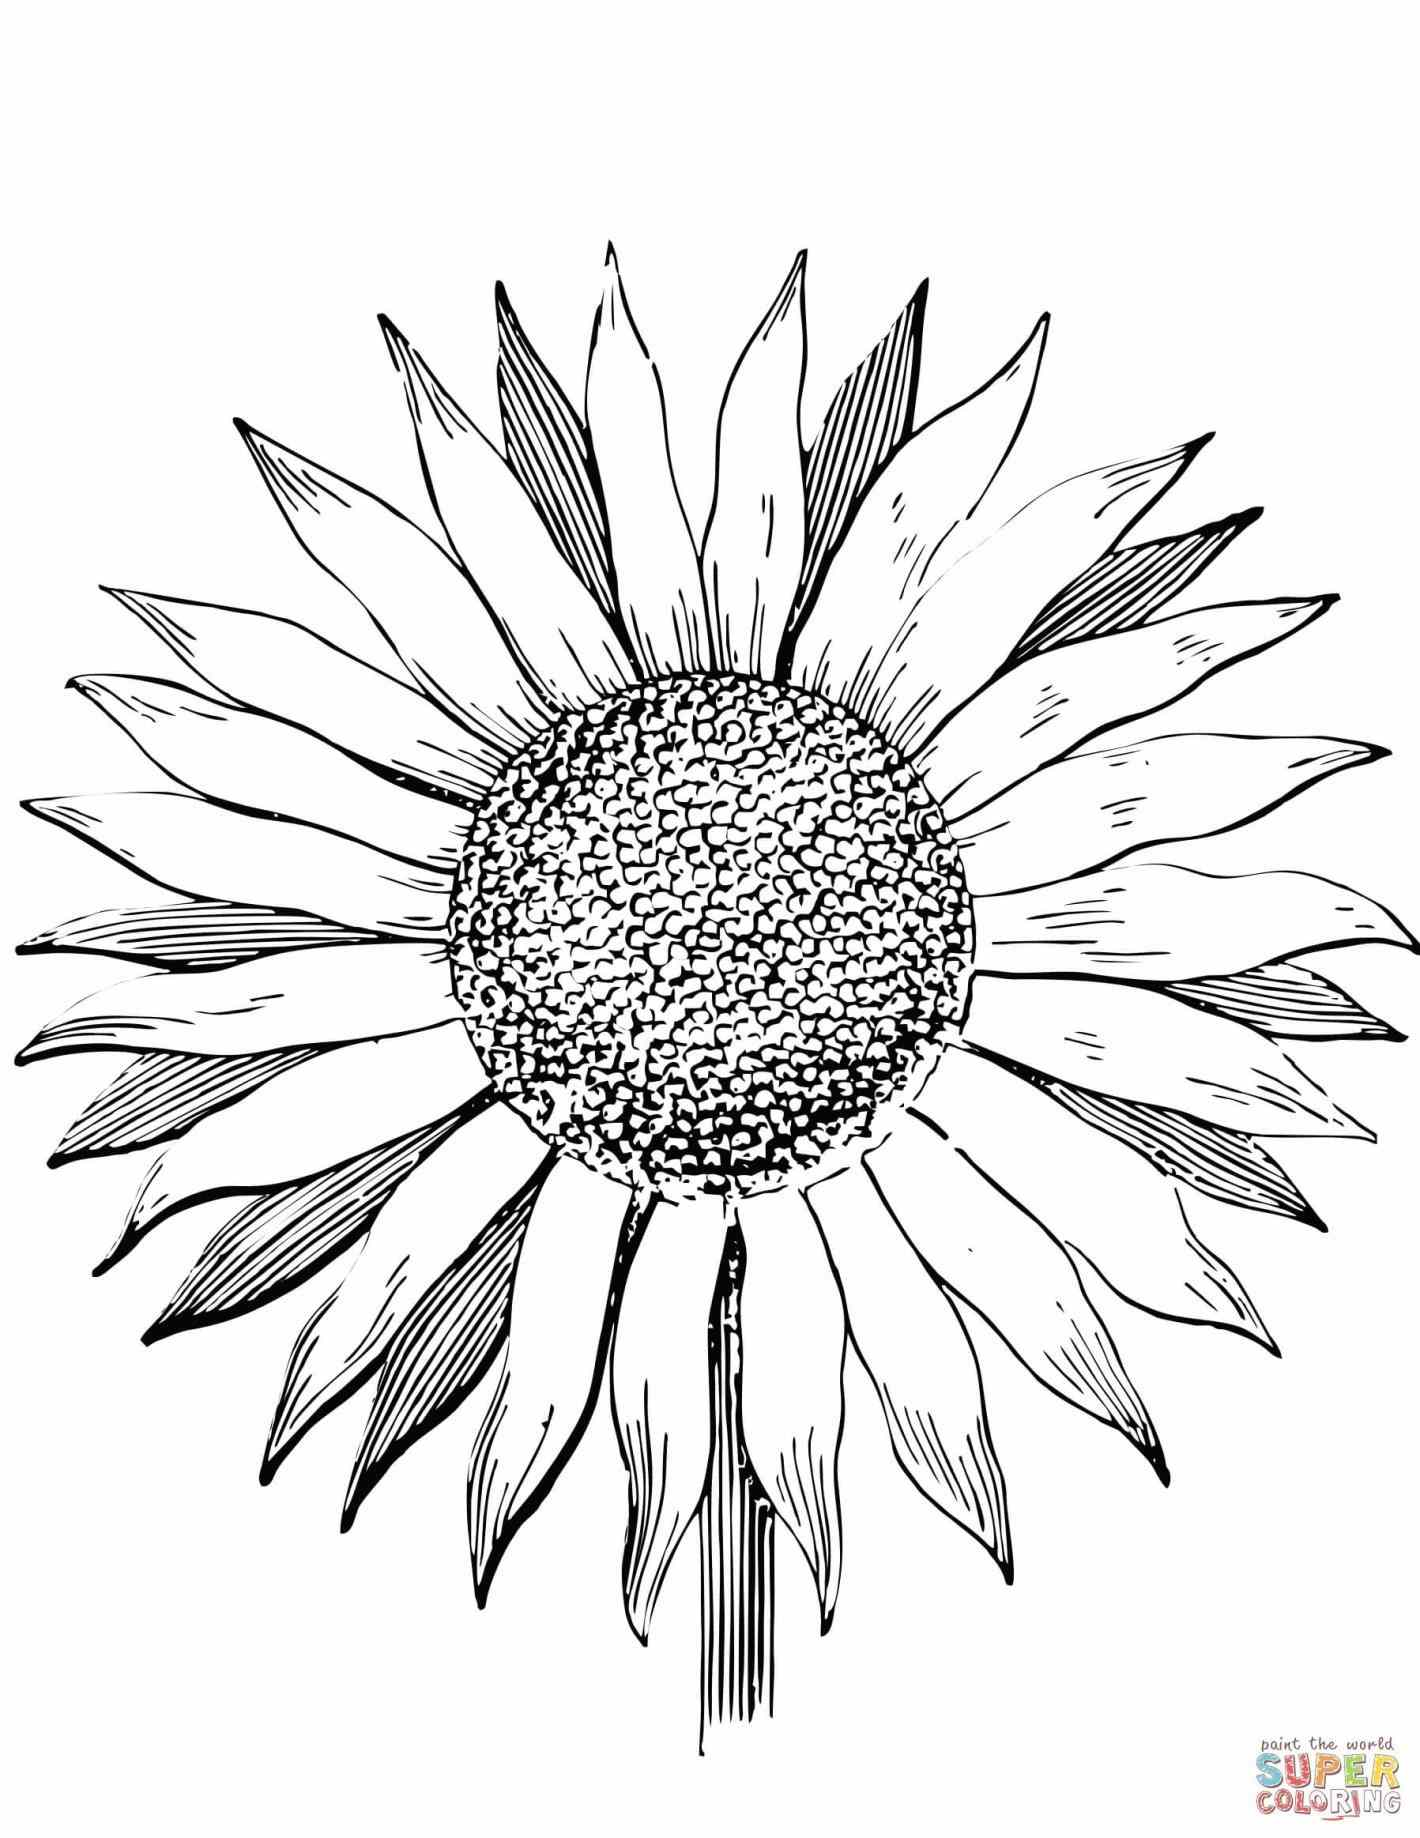 sunflower coloring sunflower drawing template at getdrawings free download sunflower coloring